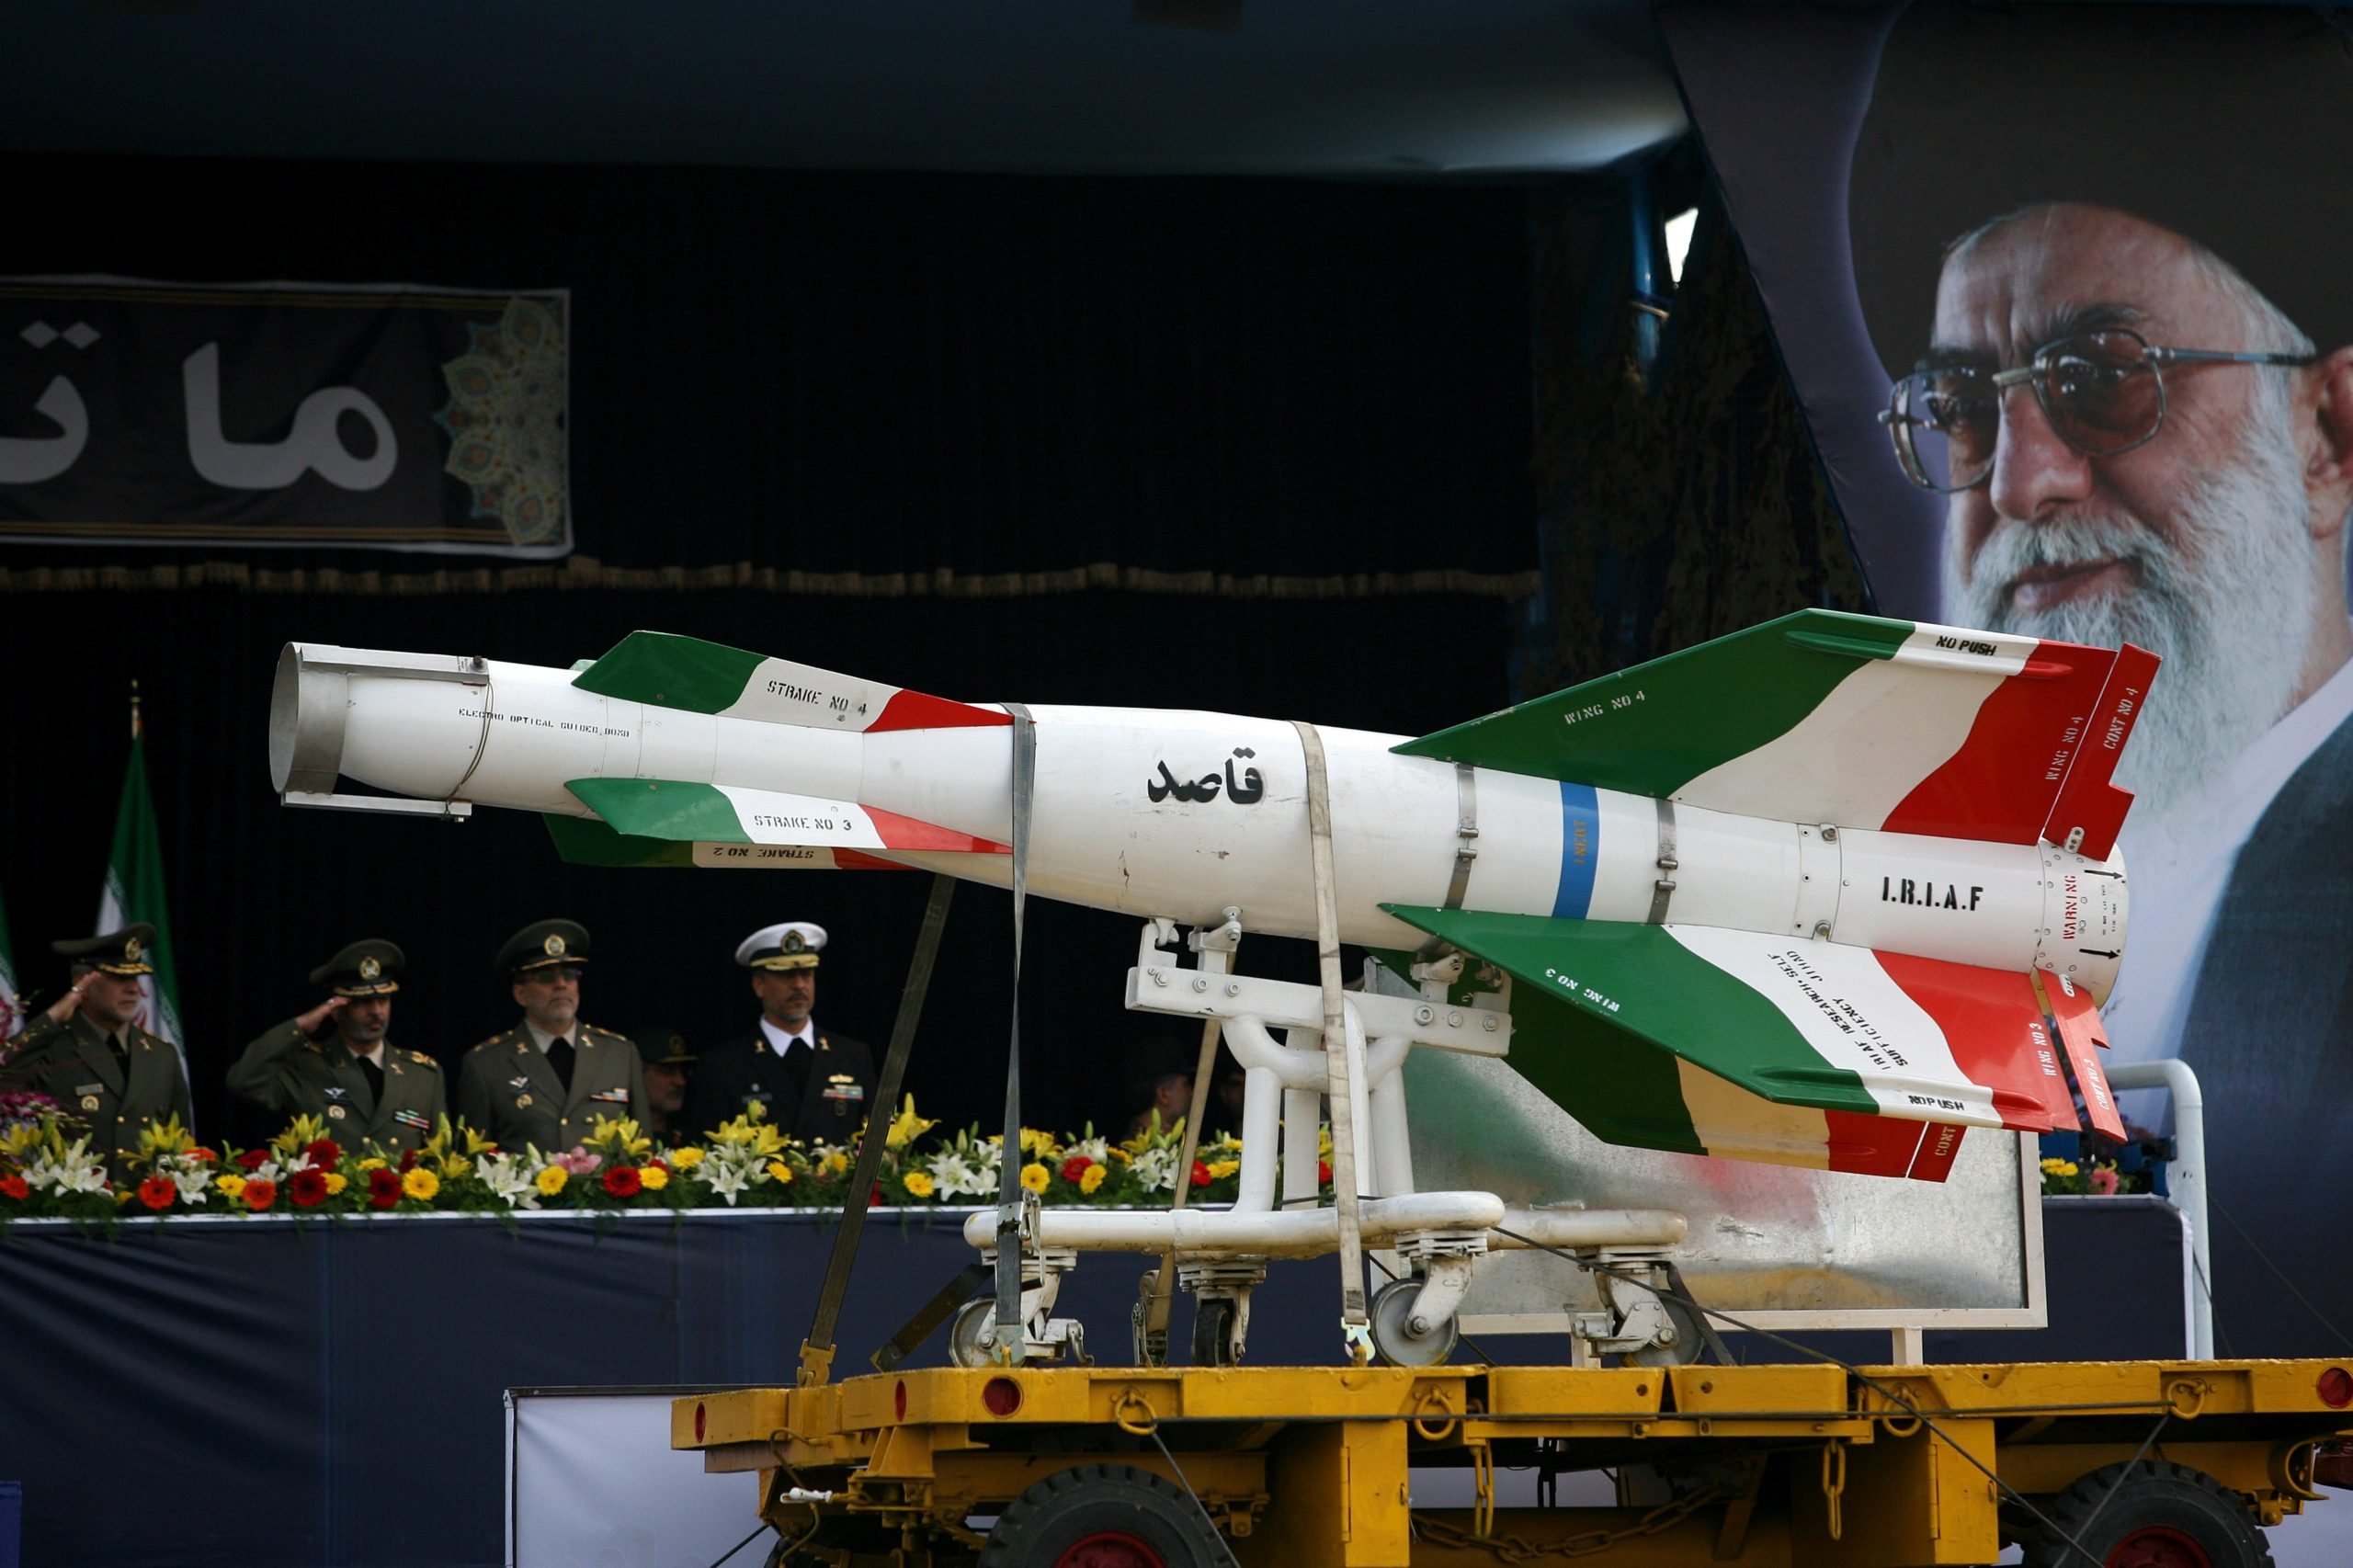 """TEHRAN, IRAN - APRIL 17: An Iranian surface to surface Ghasedak missile is driven past portraits of Iran's late founder of the Islamic Republic, Ayatollah Ali khamenei (R), during the annual army day military parade on April 17, 2008 in Tehran, Iran. Ahmadinejad proclaimed today the country's army was a powerful deterrent to all enemies saying """"No major power is able to jeopardize the Iranian nation's security and interests due to the Iranian people's power today, Iran's army, the Revolutionary Guards and the Basij would respond strongly to even the minimum aggression,"""" (Photo by Majid/Getty Images)"""